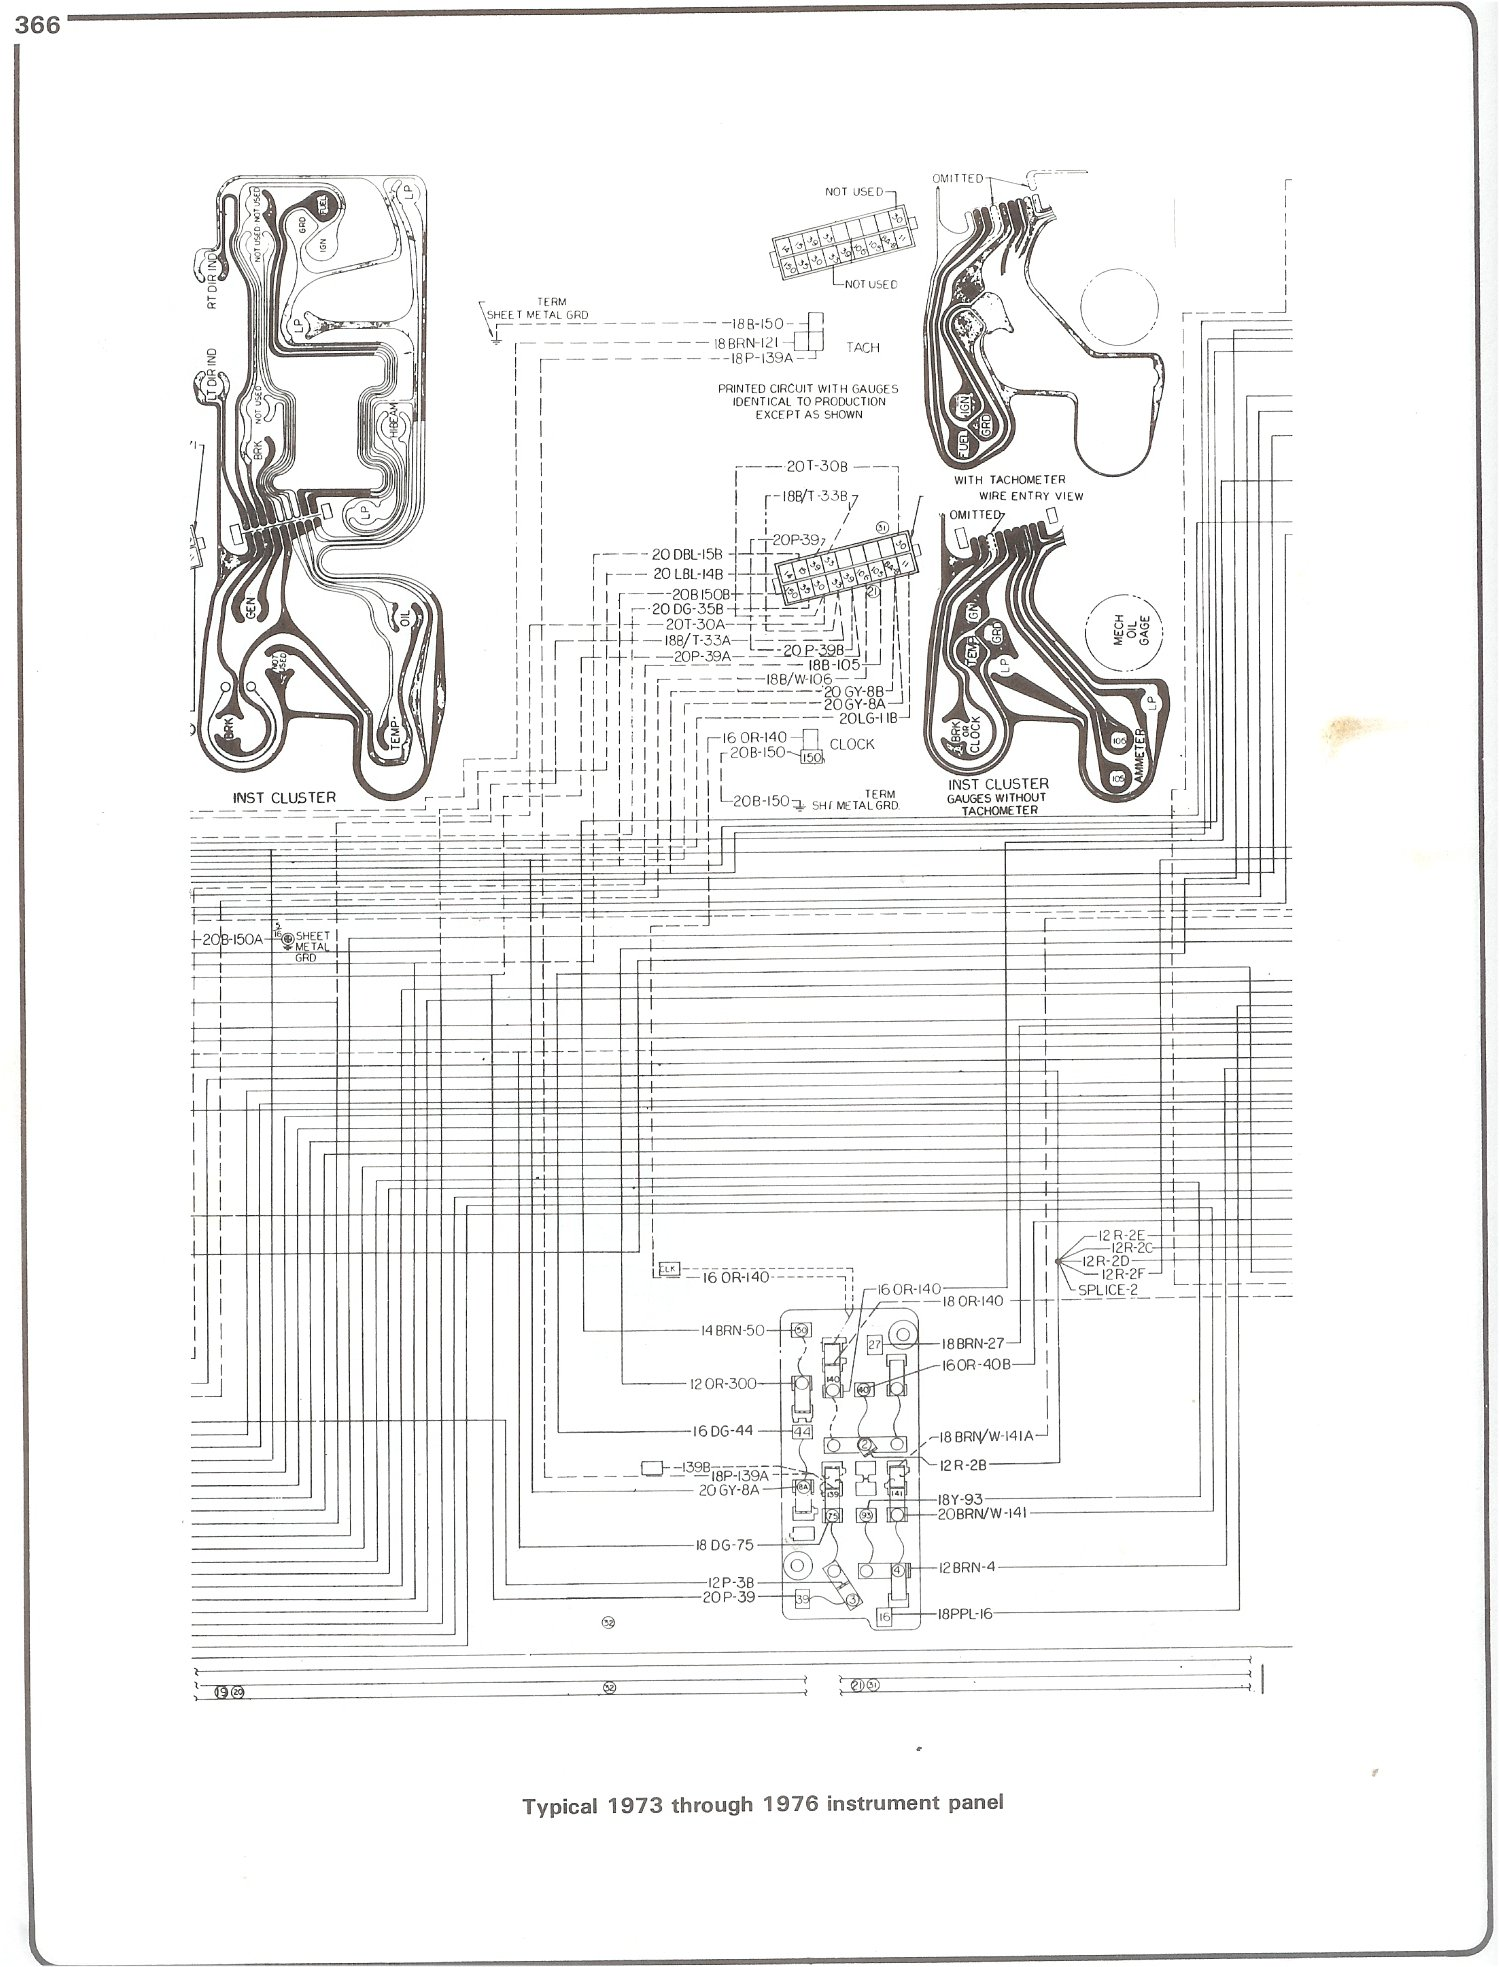 1988 Gmc Dump Truck Wiring Diagrams Library Toyota 86120 0c080 Diagram 73 76 Instrument Cluster